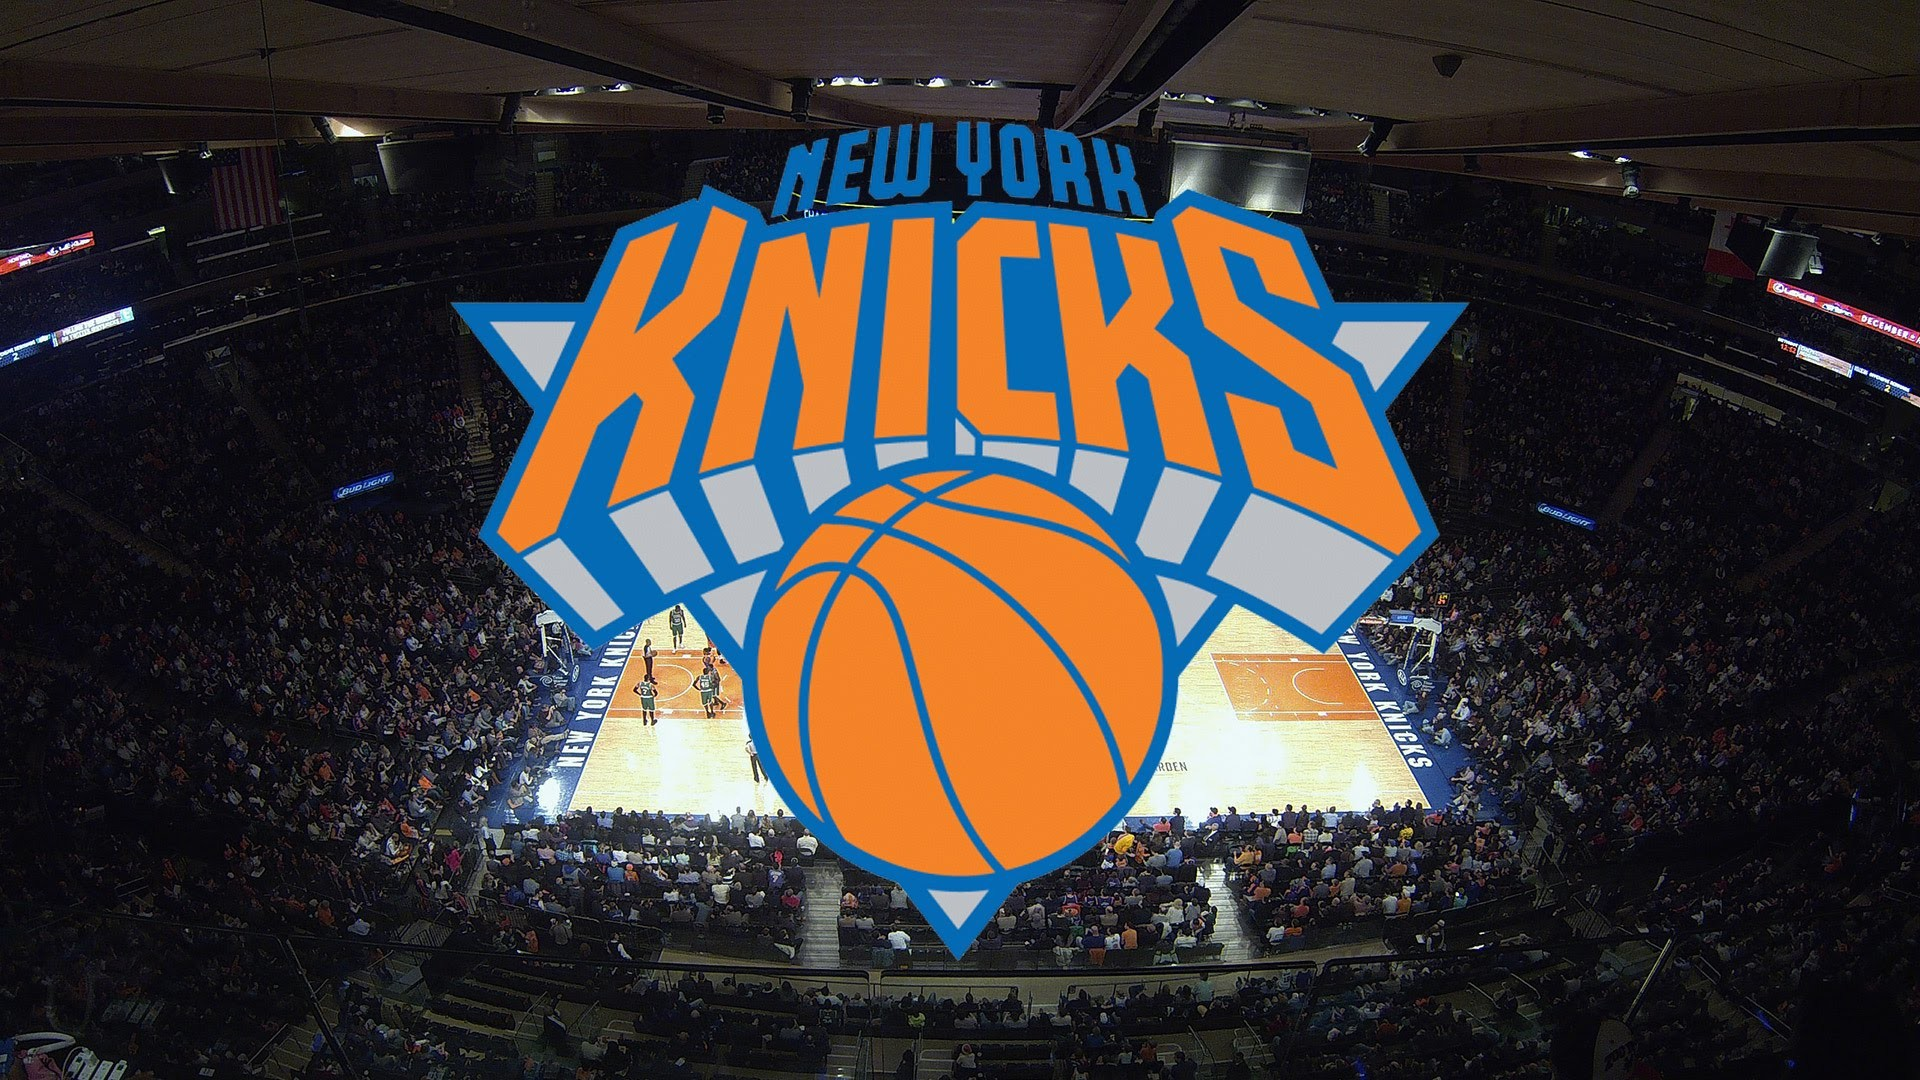 1920x1080 new york knicks madison square garden full game sounds 2 version you